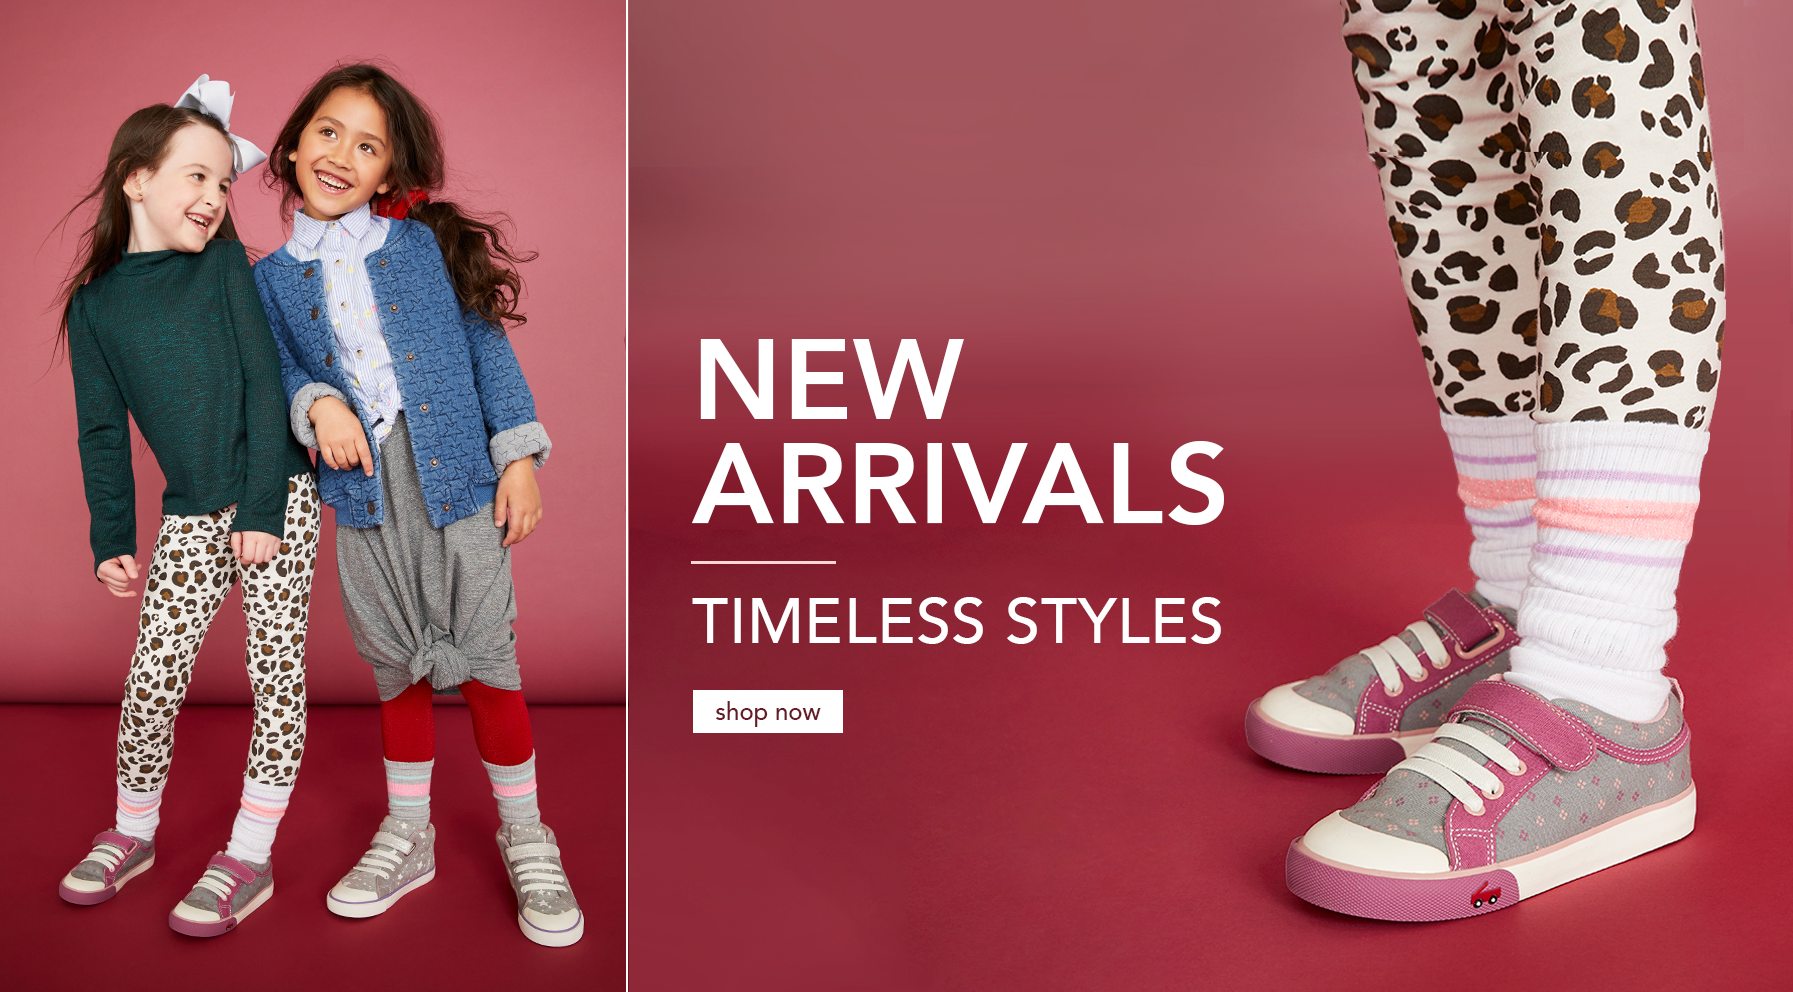 New Arrivals. Timeless Styles. Shop Now